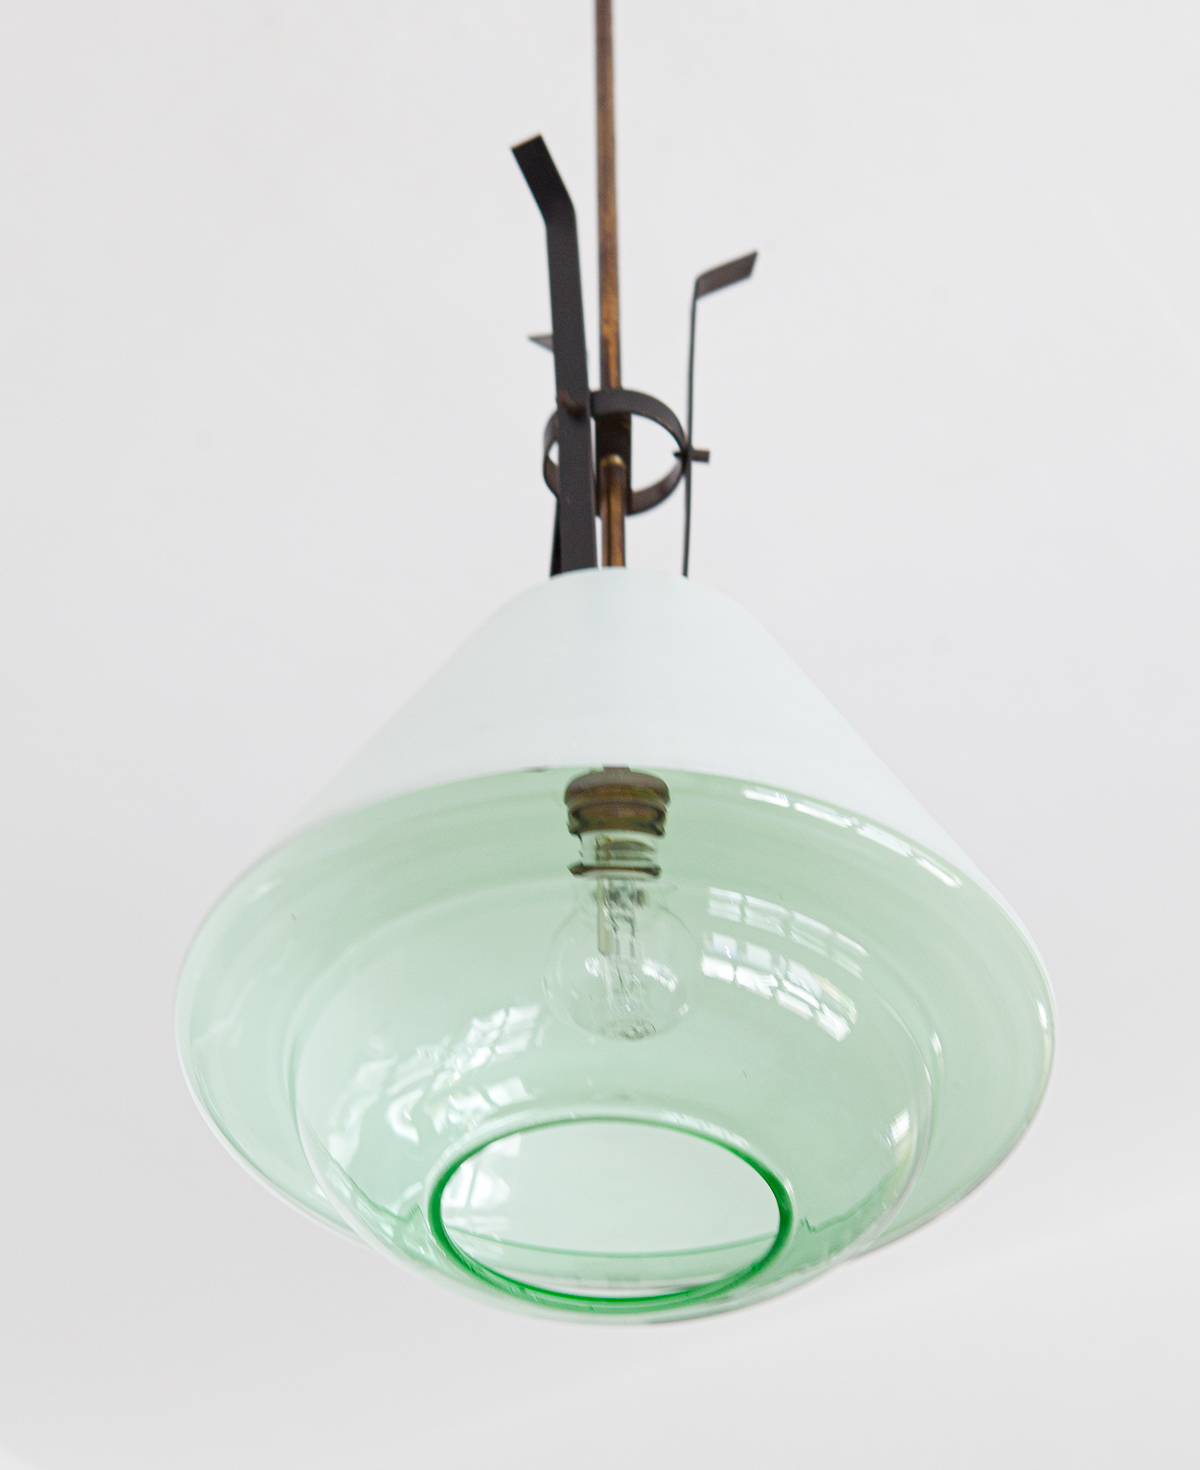 1950s-brass-and-glass-pendant-lamp-by-stlnovo-2-l92